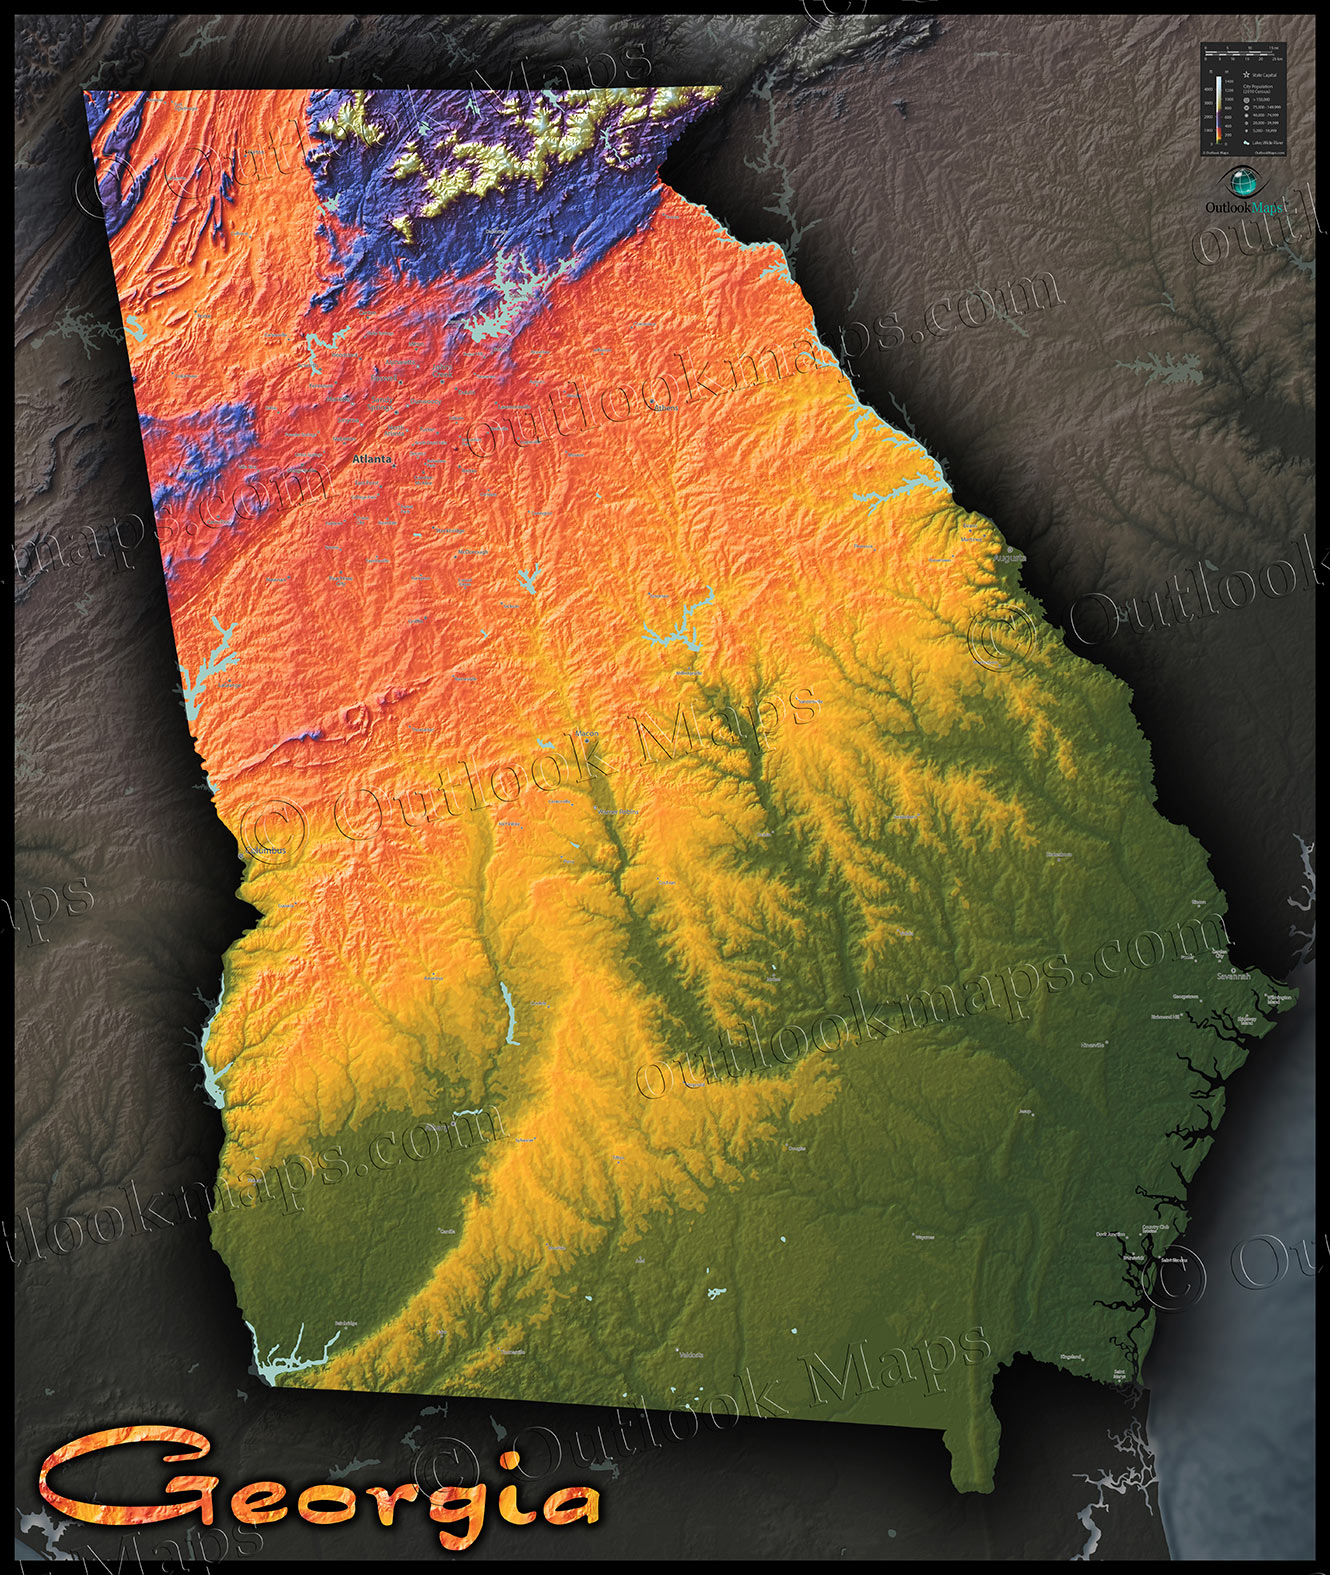 Topographic Georgia State Map Vibrant Physical Landscape - Georgia physical map